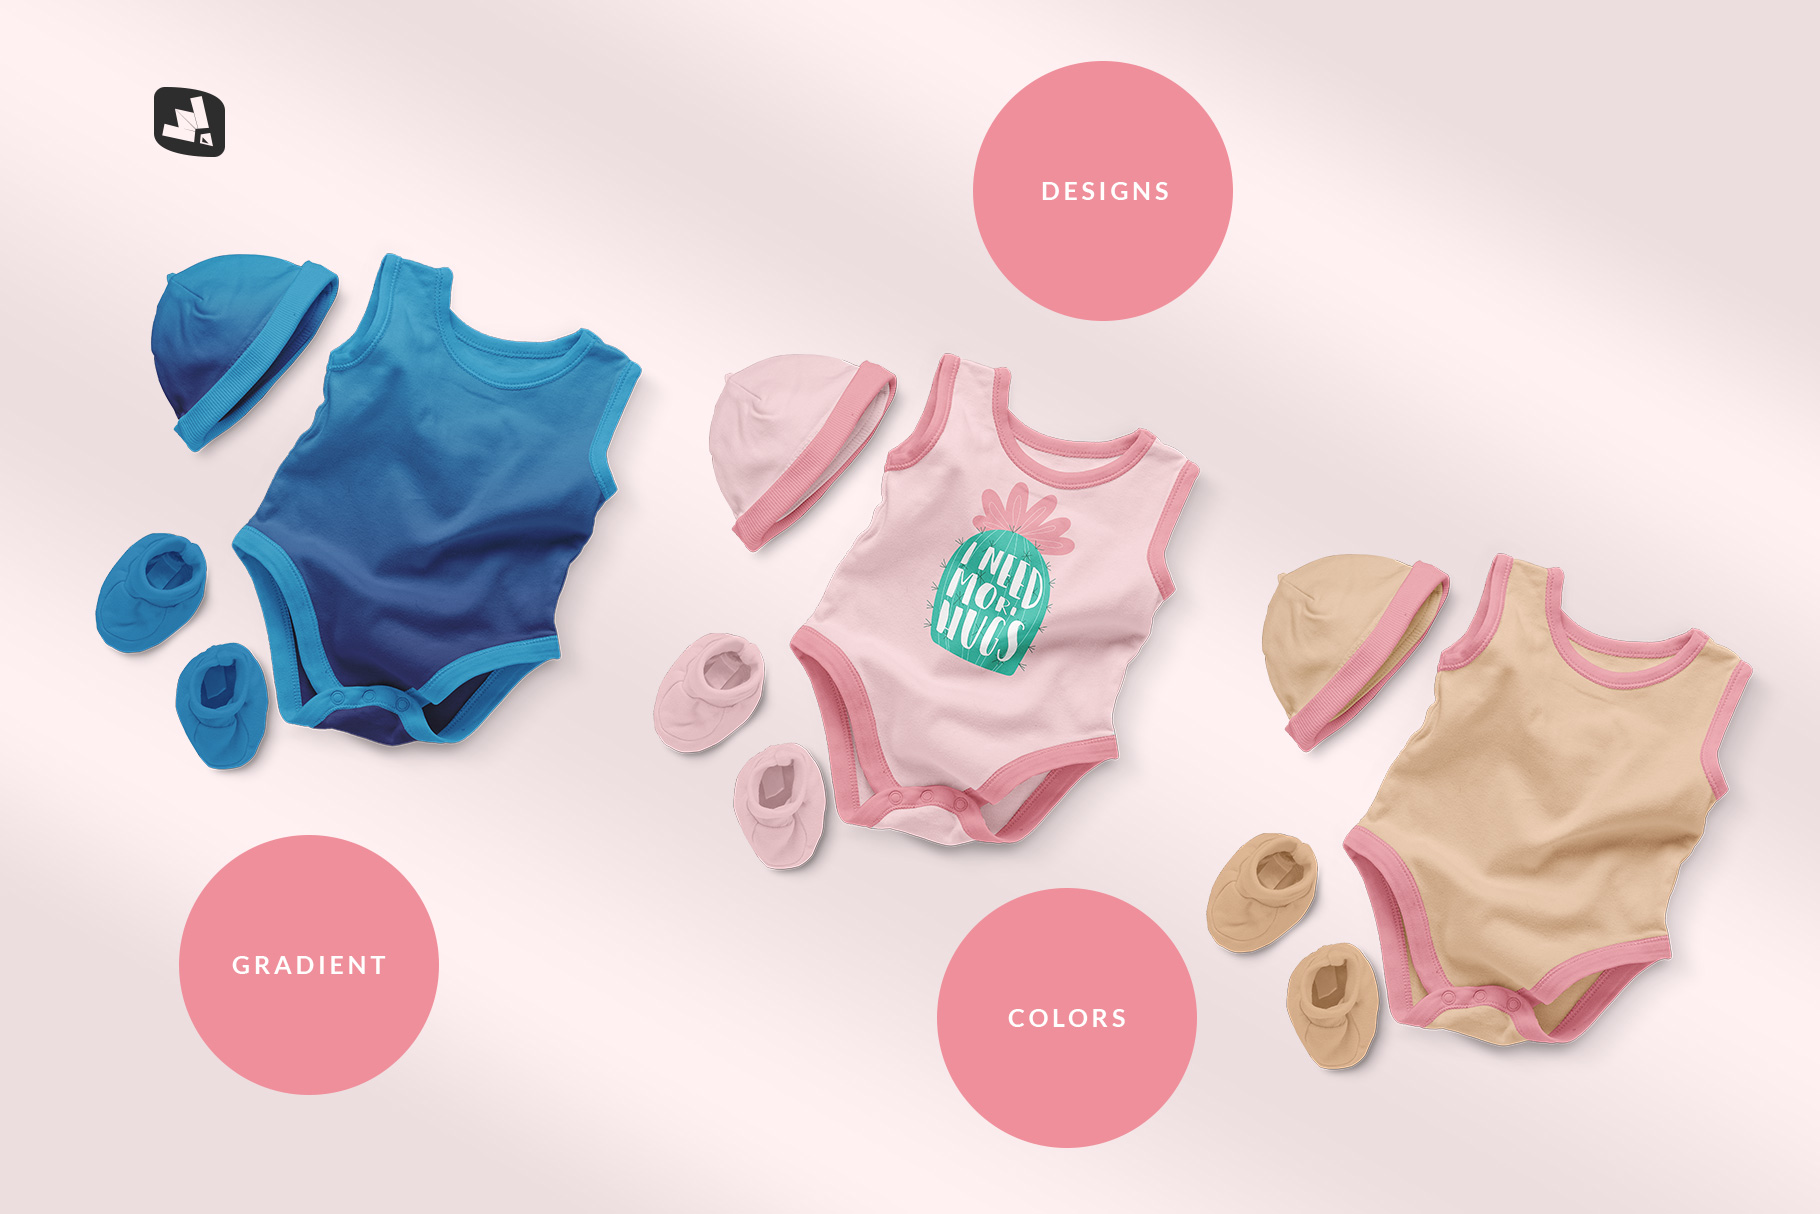 types of the sleeveless baby romper with cap mockup